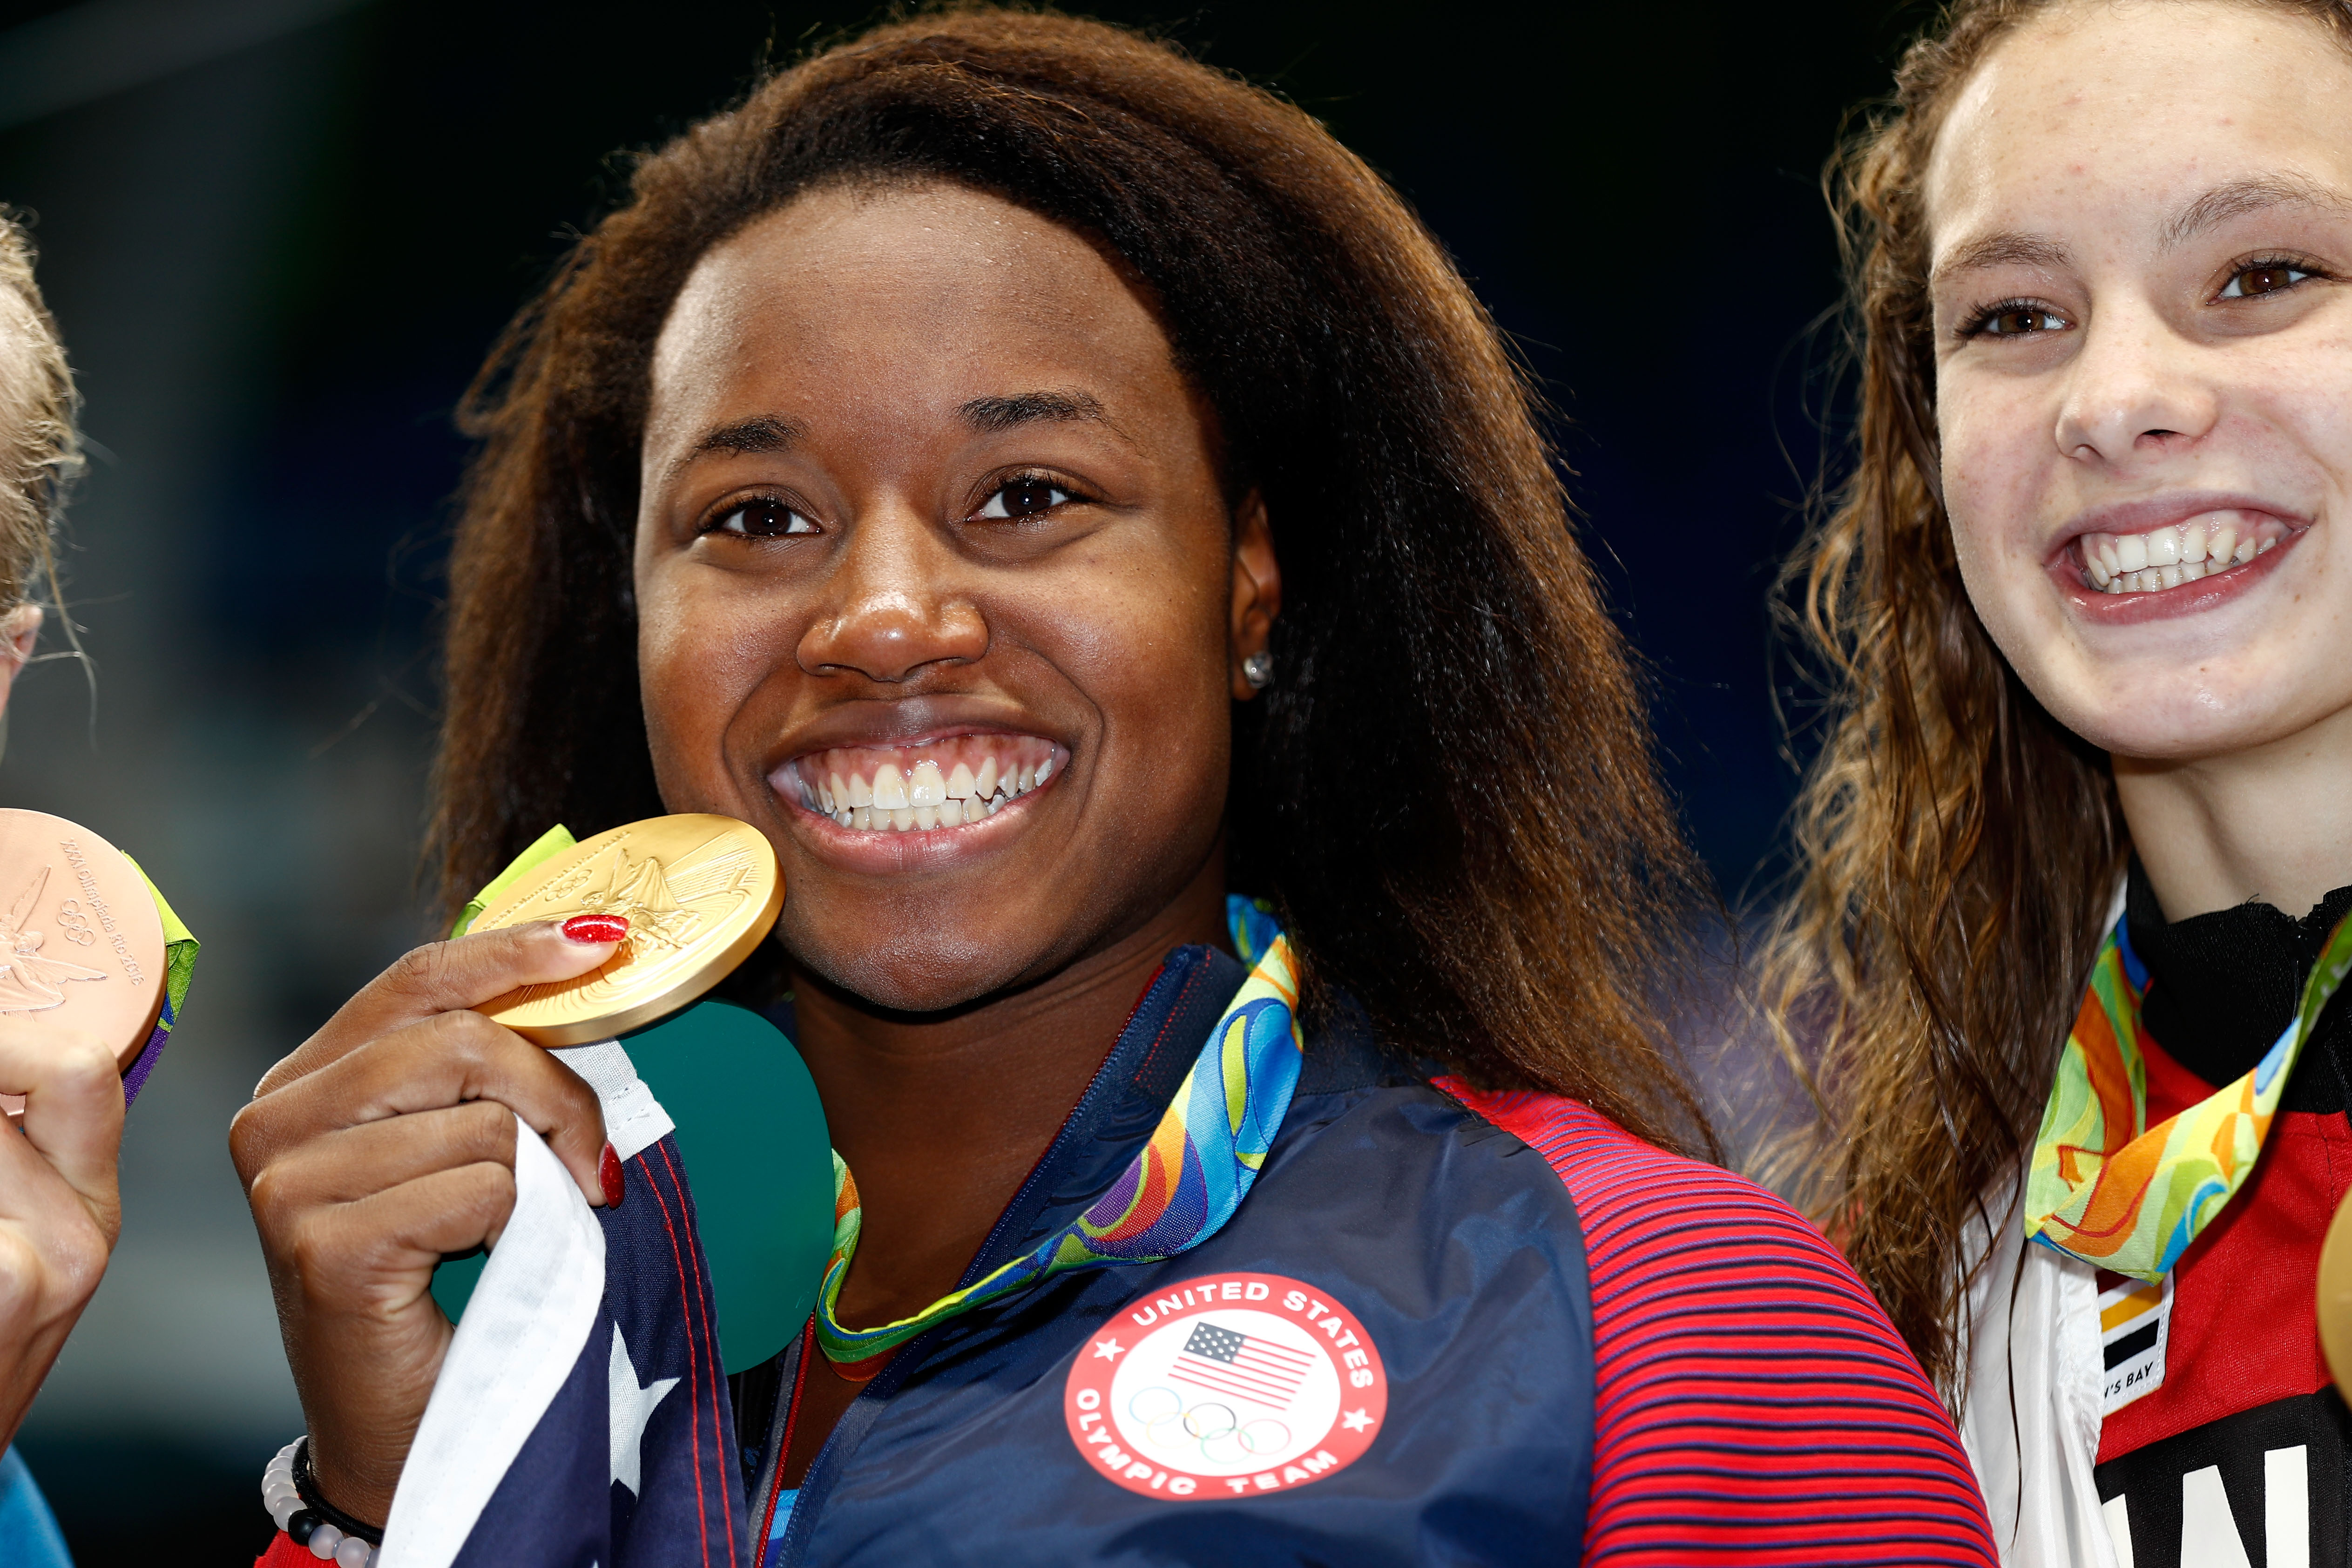 Gold medalist Simone Manuel of the United States celebrates during the medal ceremony for the Women's 100m Freestyle Final on Day 6 of the Rio 2016 Olympic Games at the Olympic Aquatics Stadium on August 11, 2016 in Rio de Janeiro, Brazil.